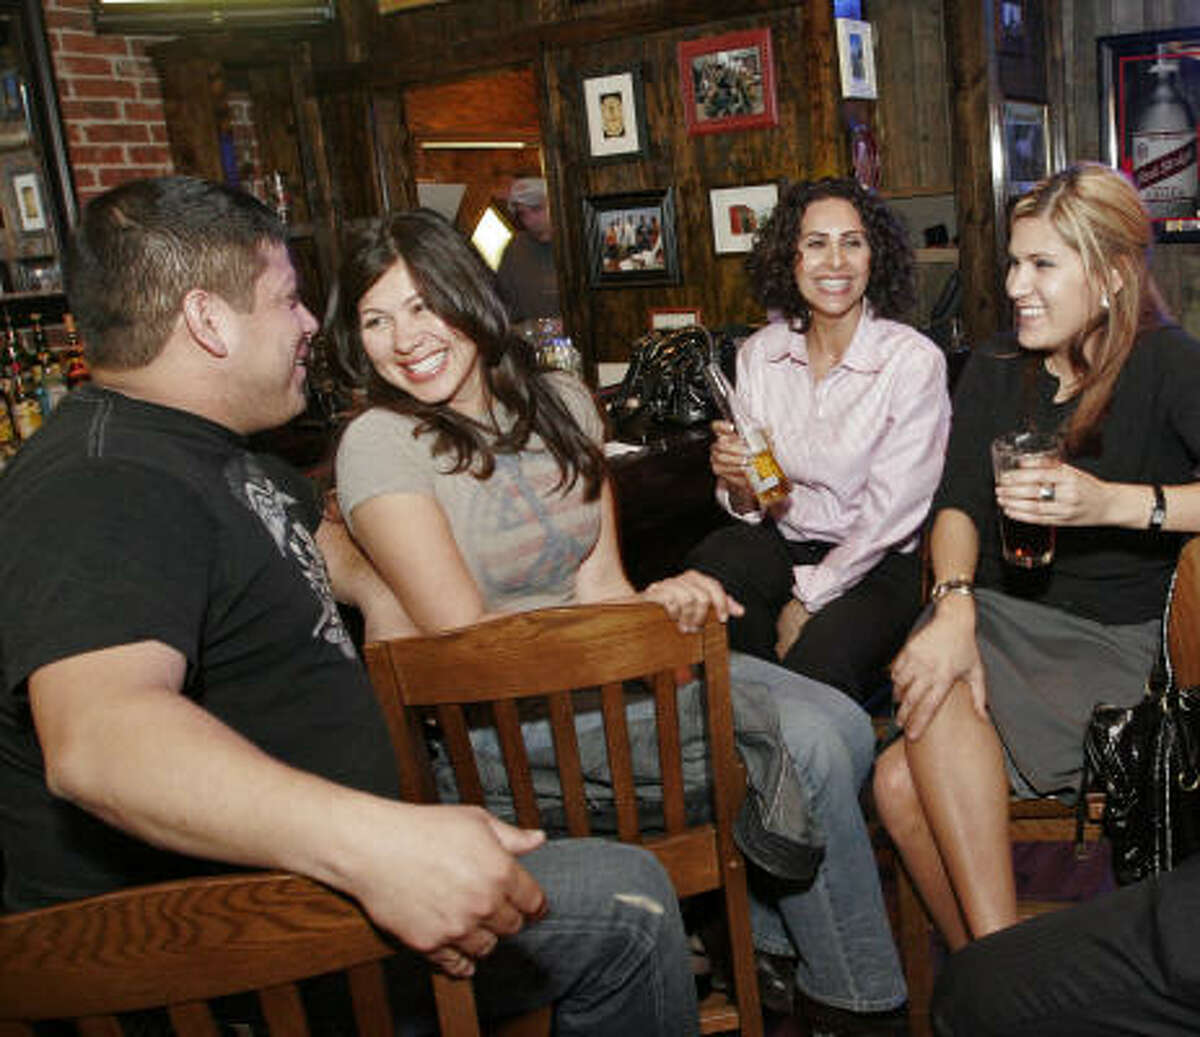 Get happy: Jorge Ortiz, from left, Denise Soto, Lilia Figueroa and Melissa Ortegon spend happy hour at the Porch Swing Pub, 69 Heights Blvd.